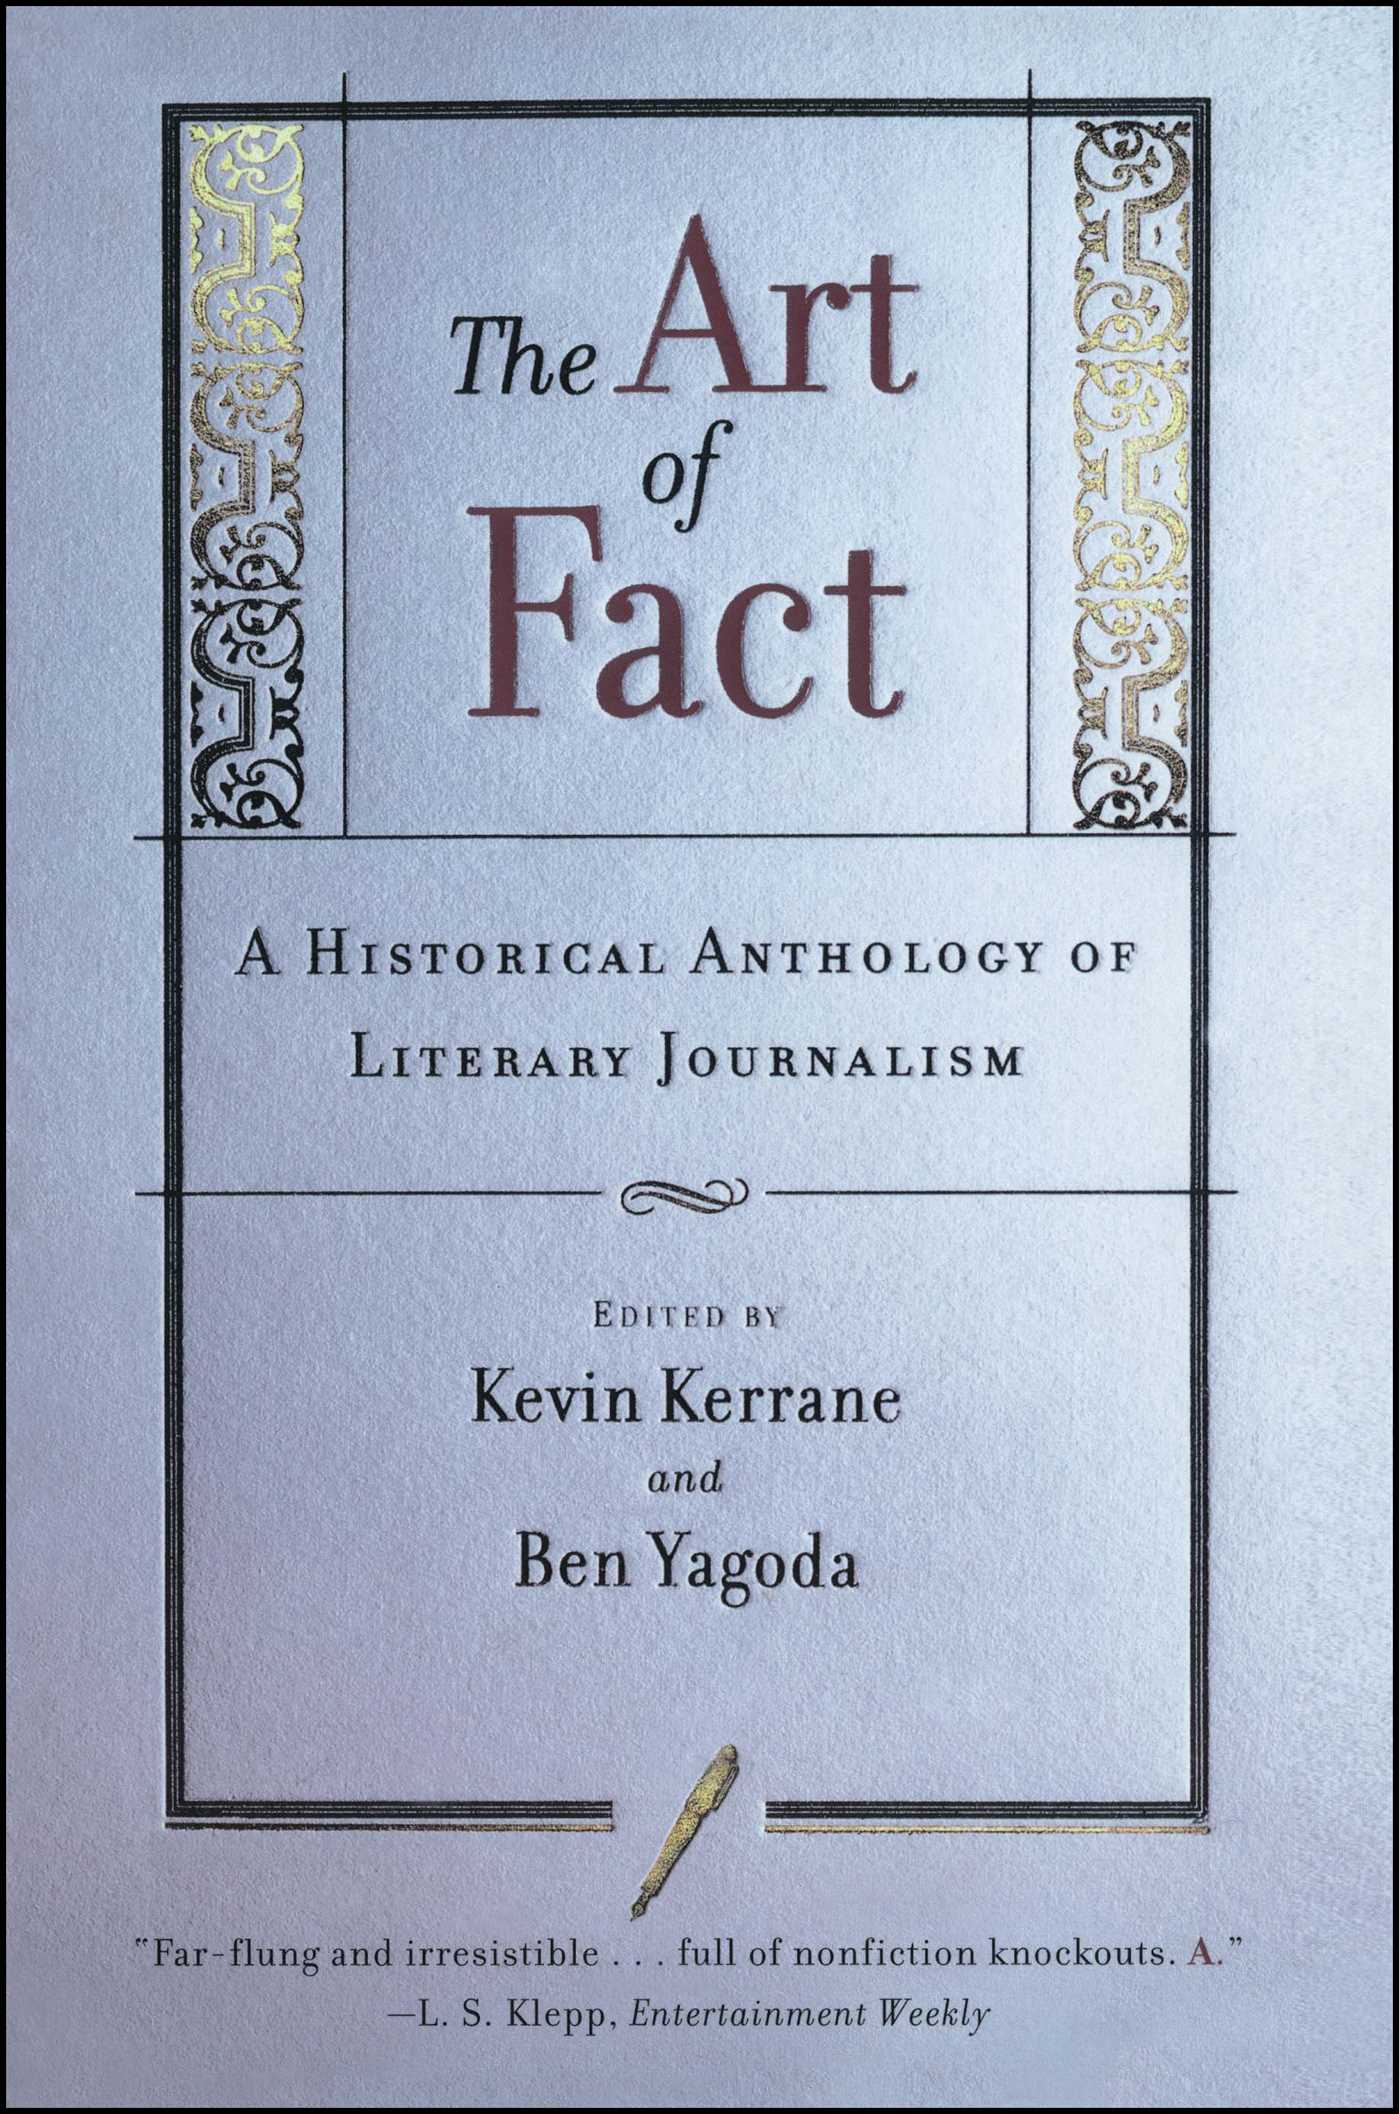 Book Cover Image (jpg): The Art of Fact